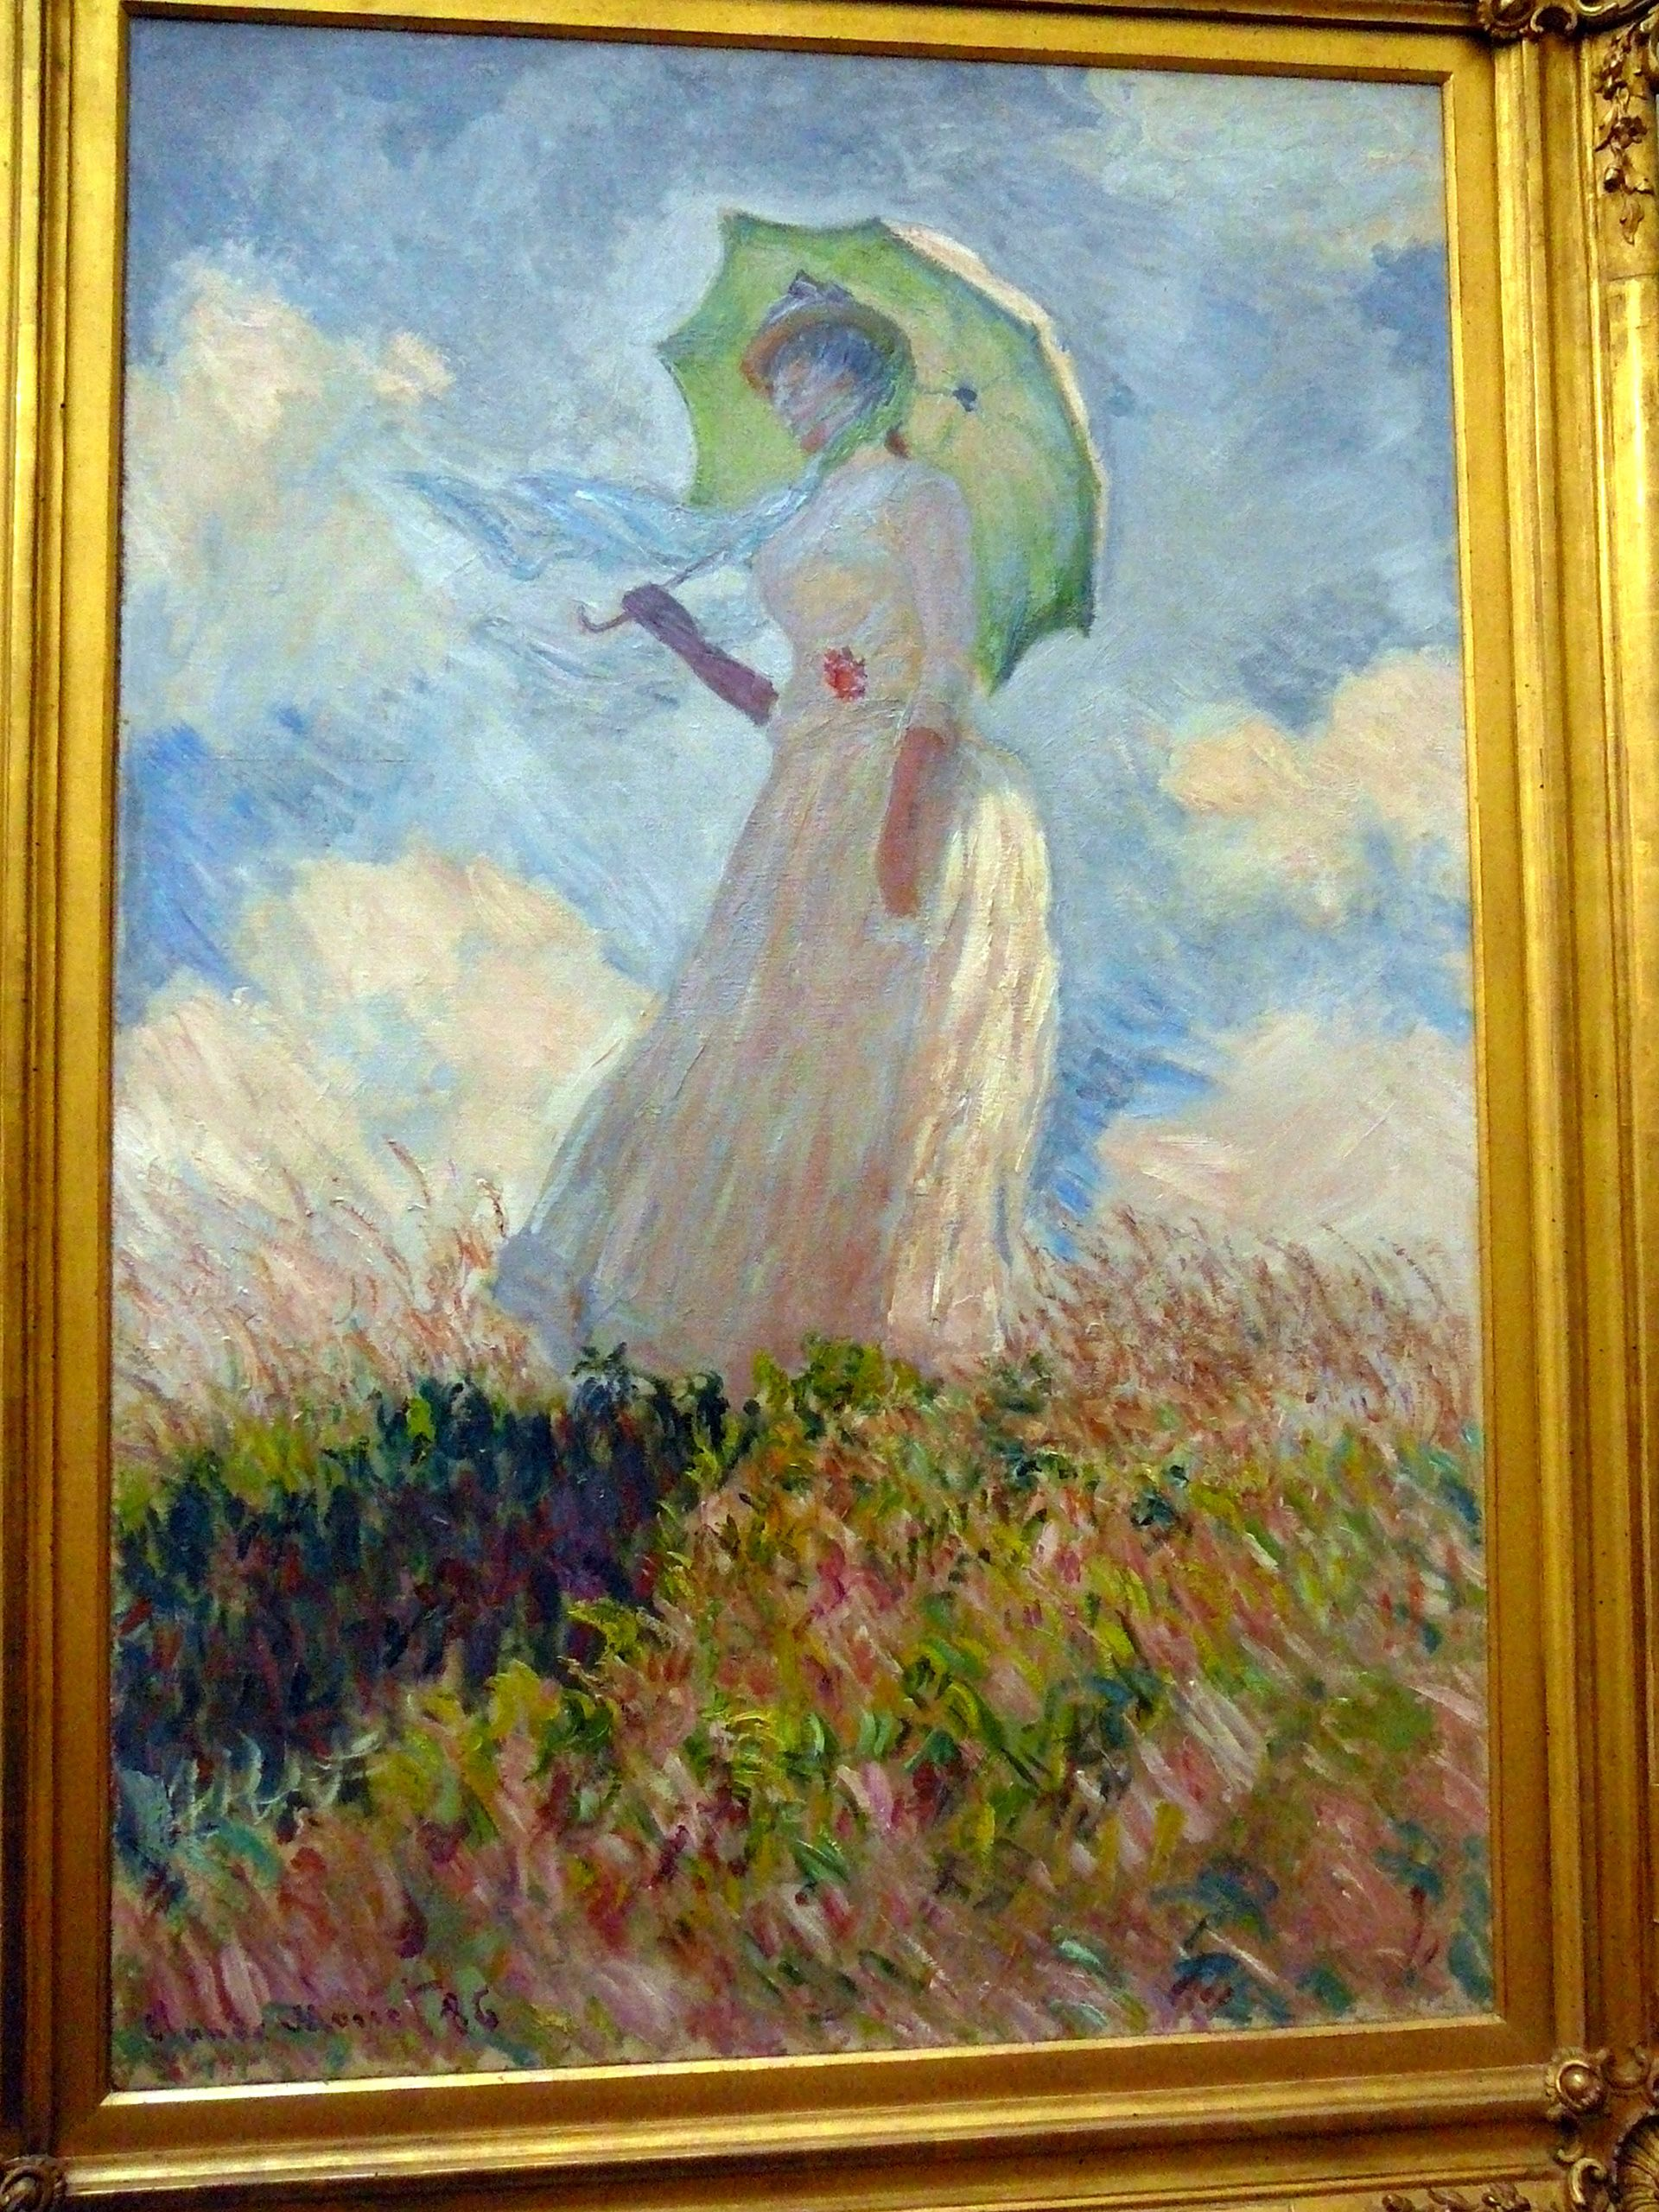 By Claude Monet 1886 Girl With Umbrella In The Orsay Museum